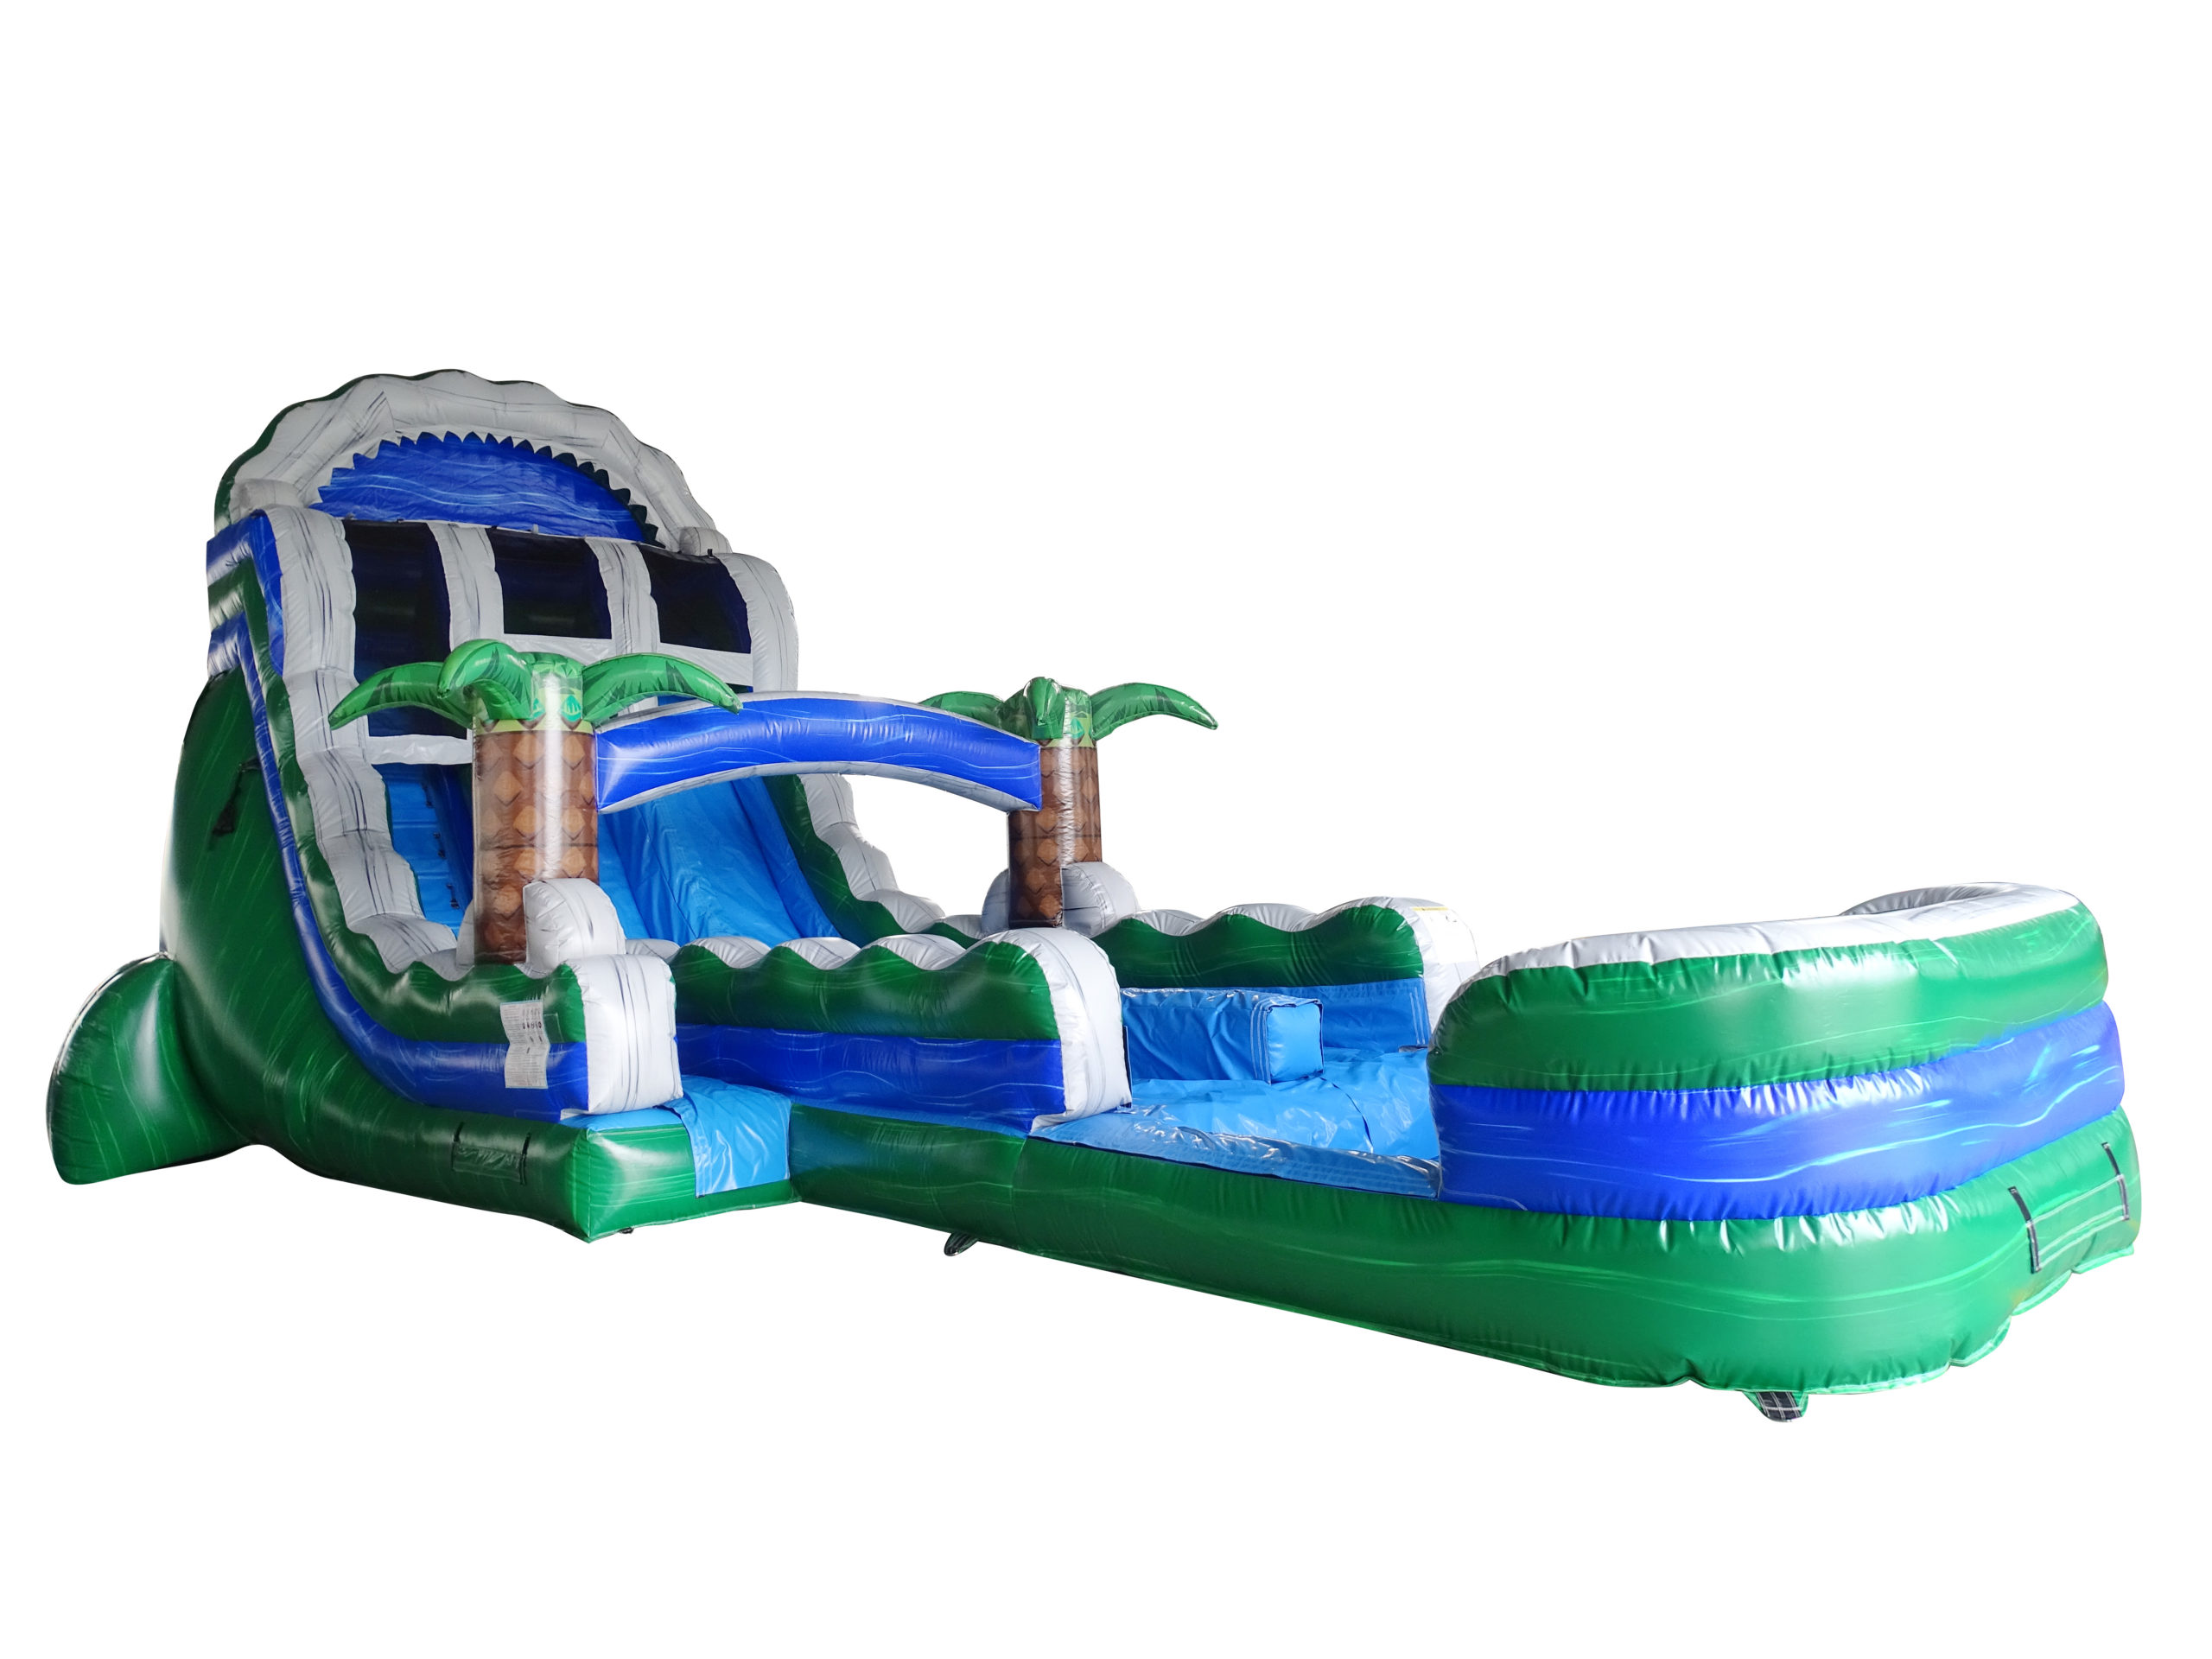 19ft-Green-Gush-1-2-scaled